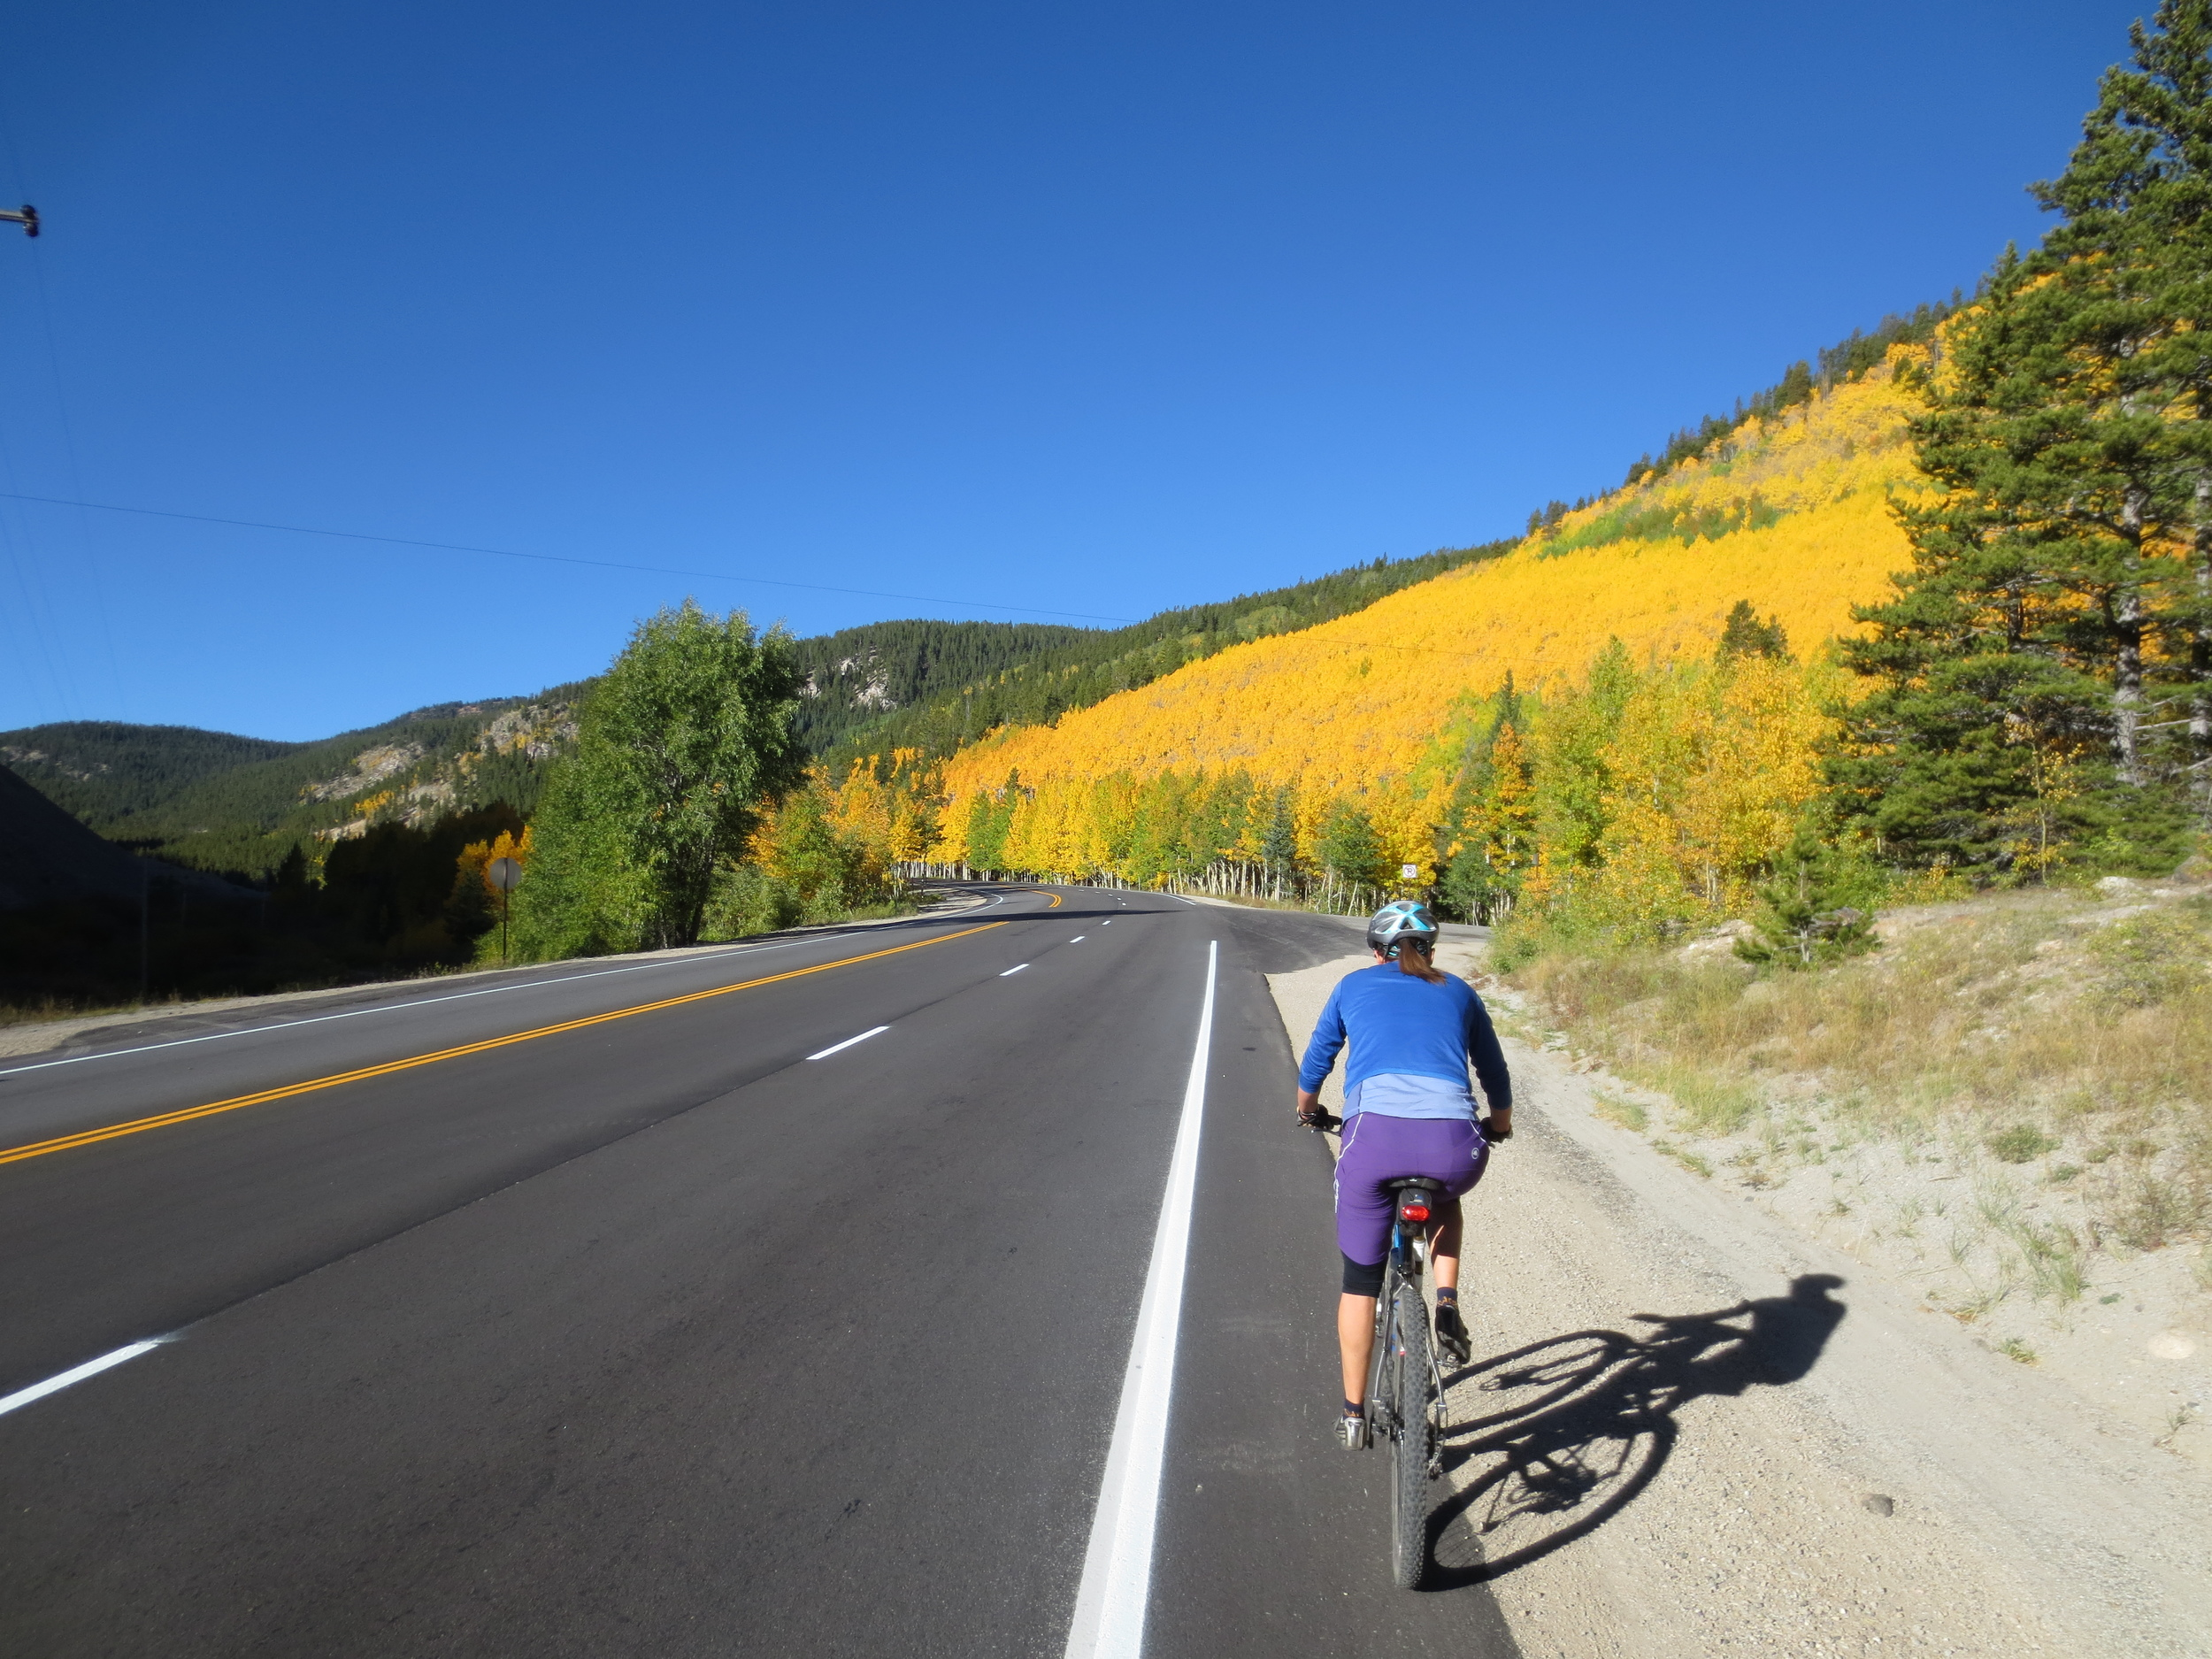 Fast forward two weeks and over to Salida, and Sandhya and I are heading up Monarch Pass, looking forward to singletrack. I hadn't ridden the Crest trail in four years, and Sandhya had never been. High time to go back!